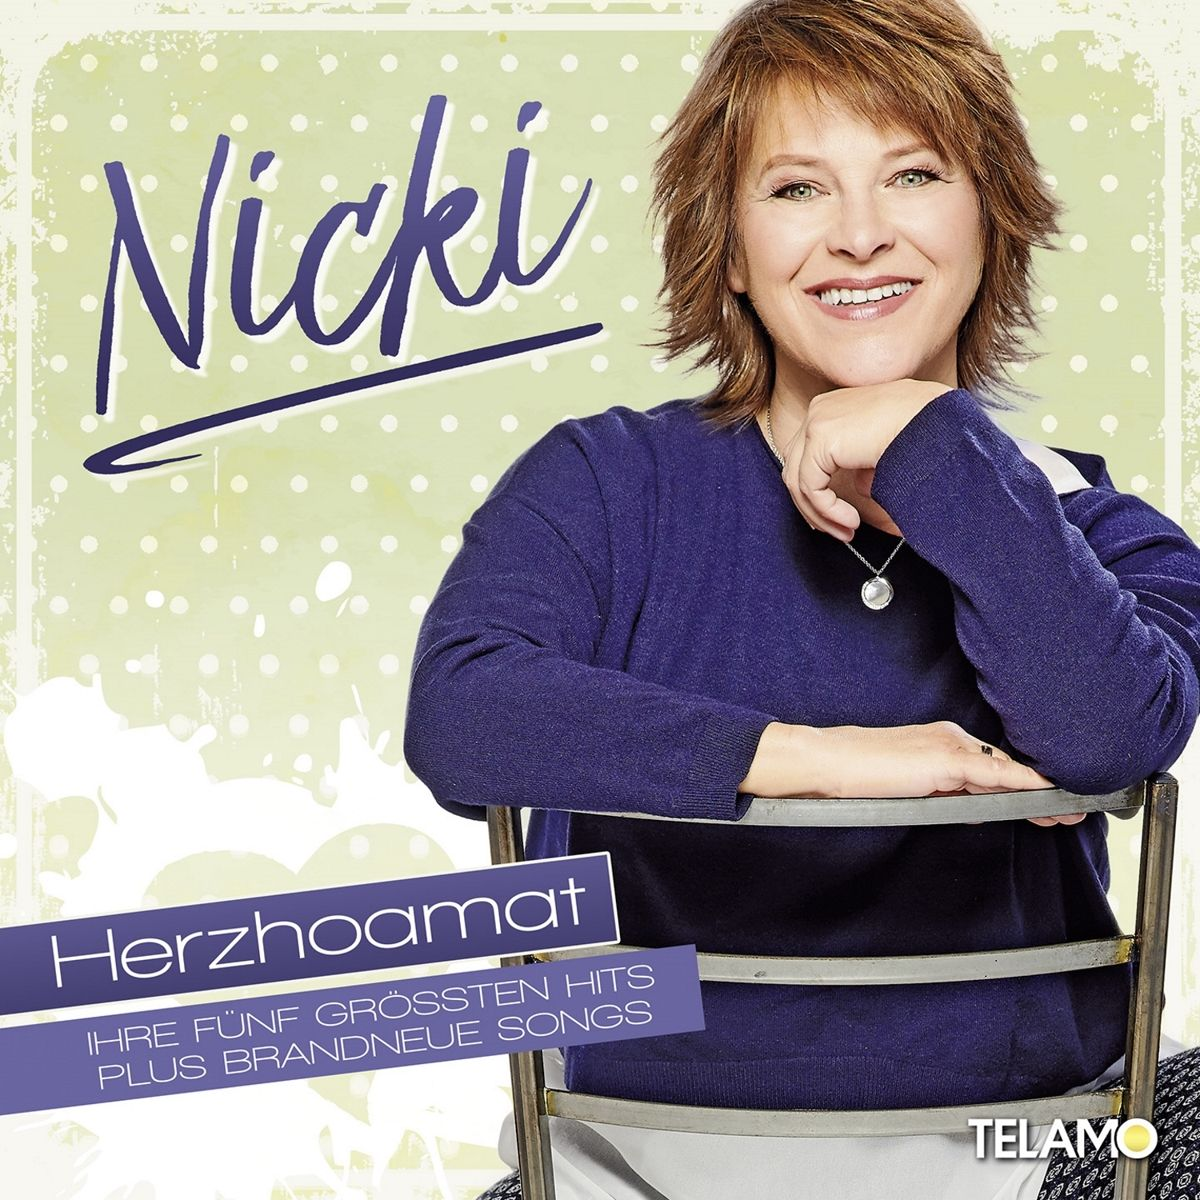 Nicki Herzhoamat Austriancharts At - Nicki Vorhang Auf Text